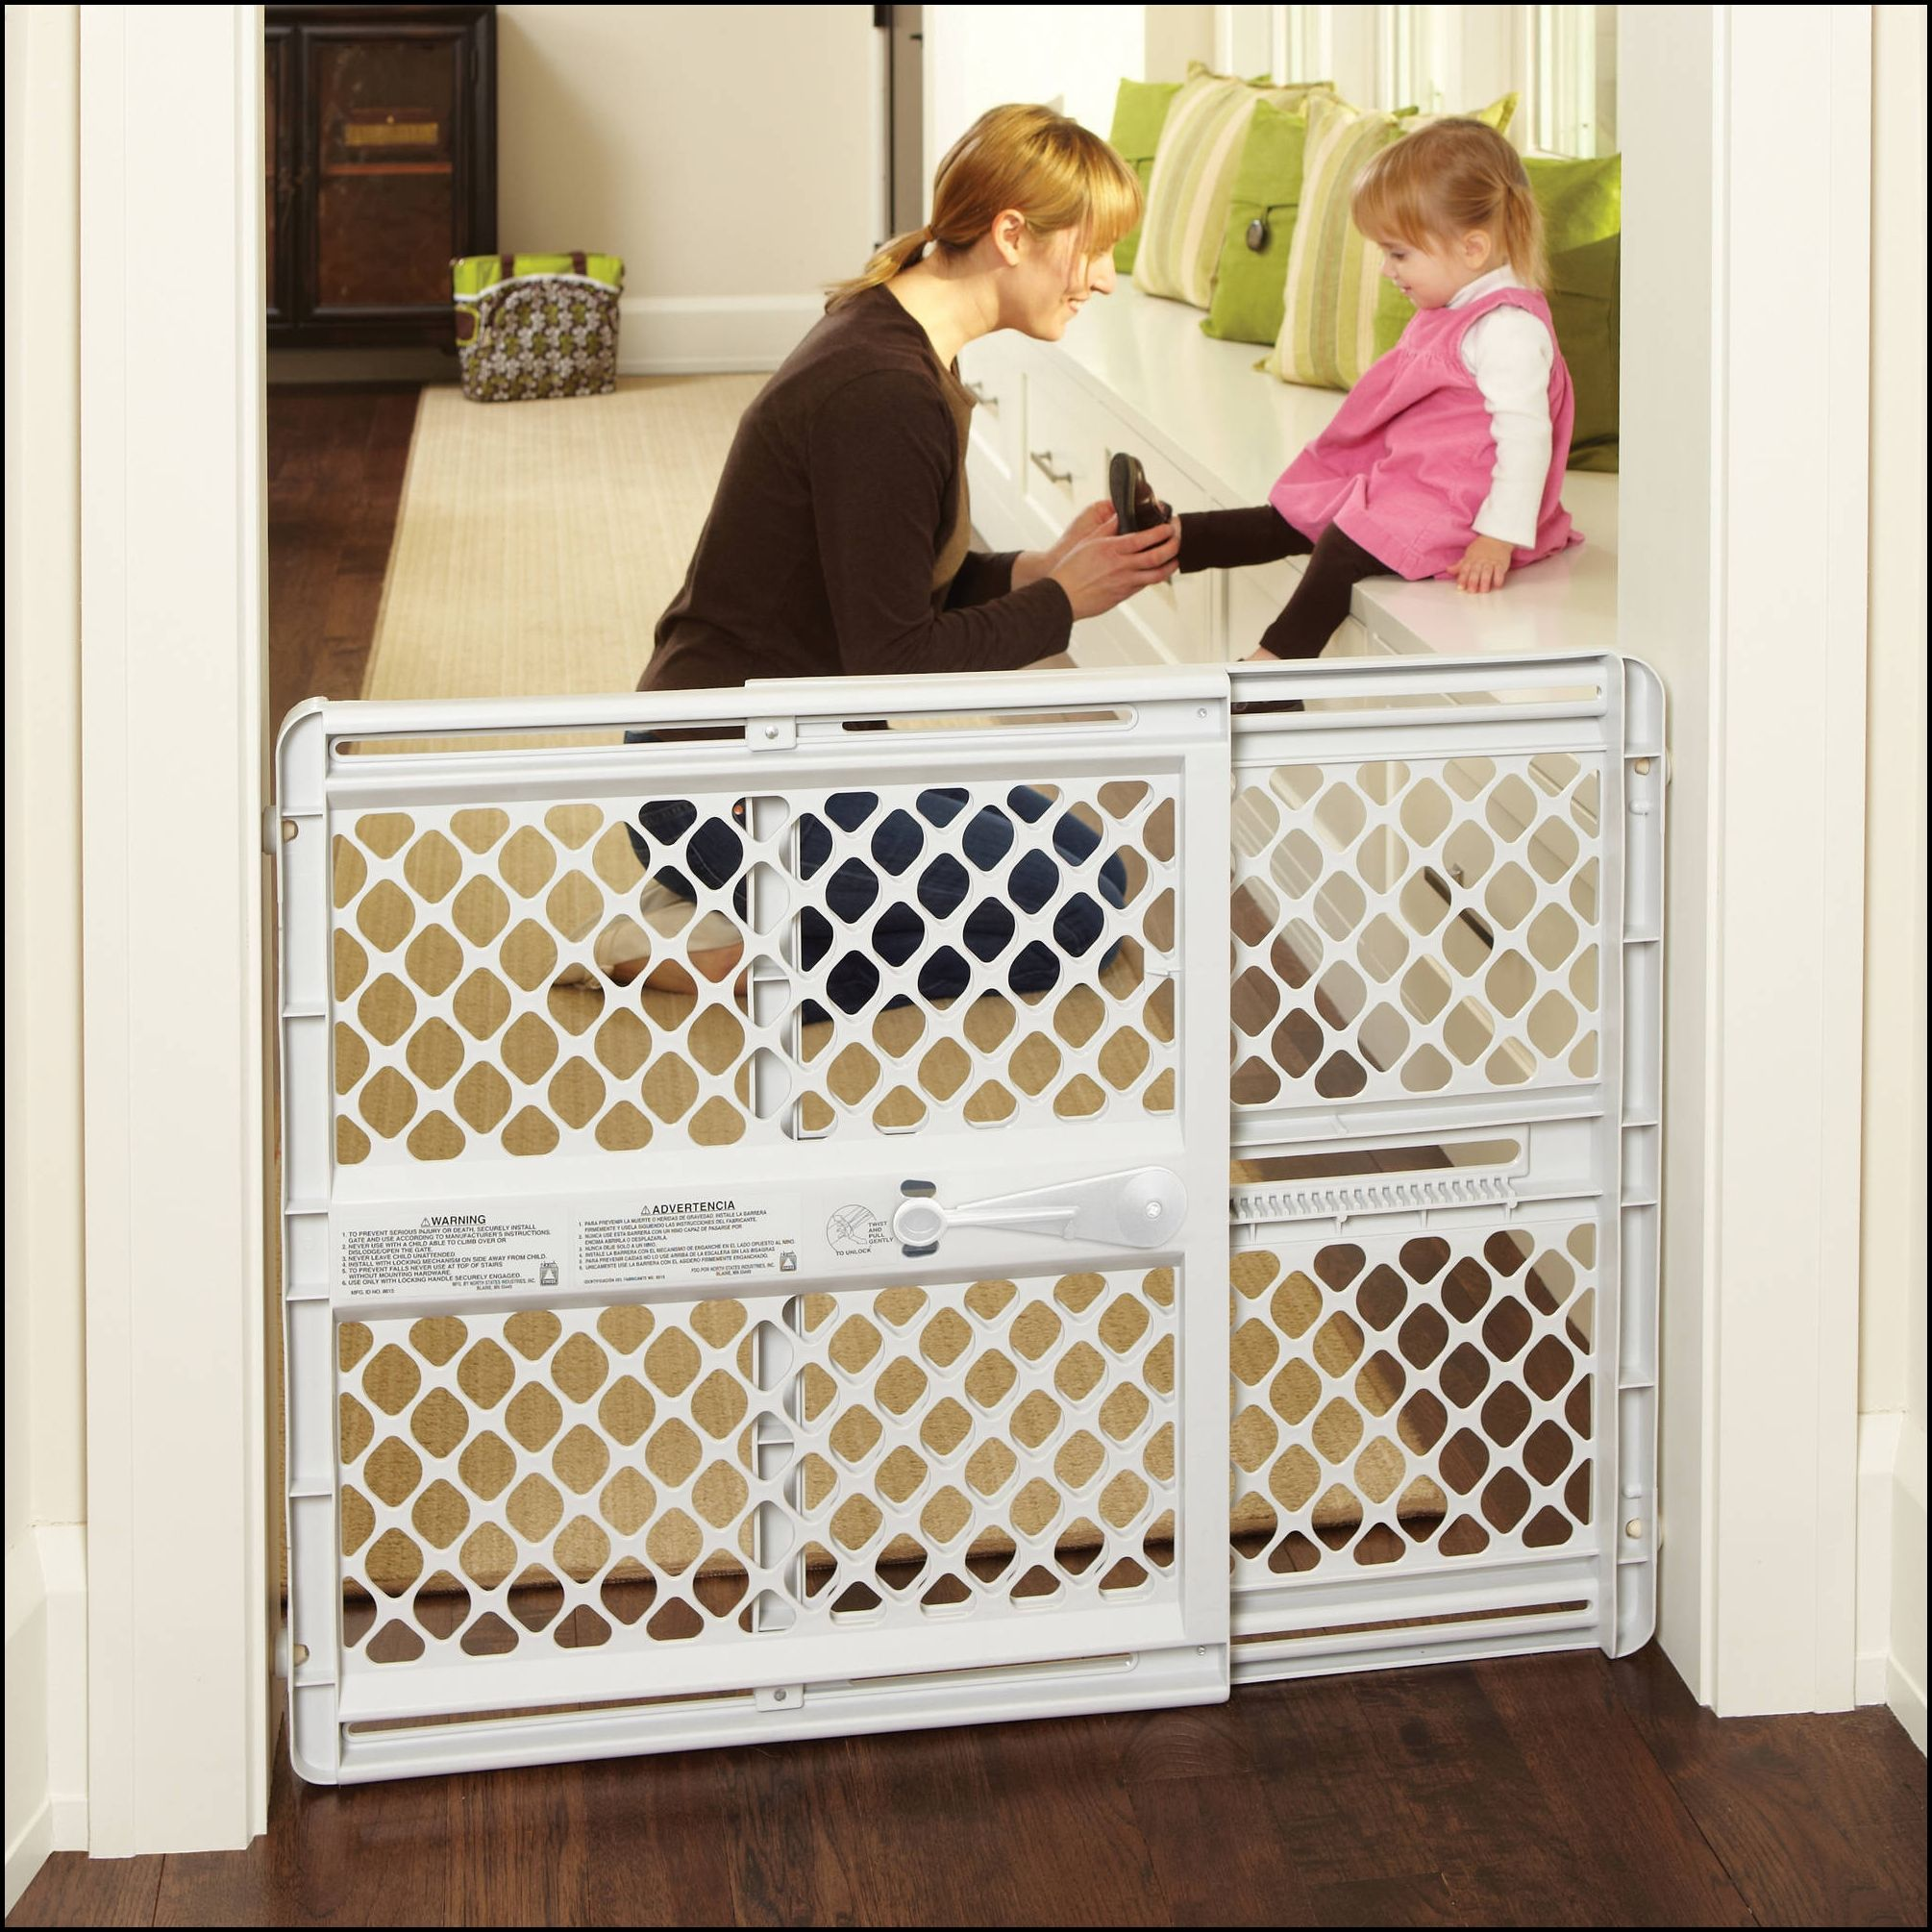 Baby Fence Walmart Baby Gates Child Safety Gates Baby Safety Gate